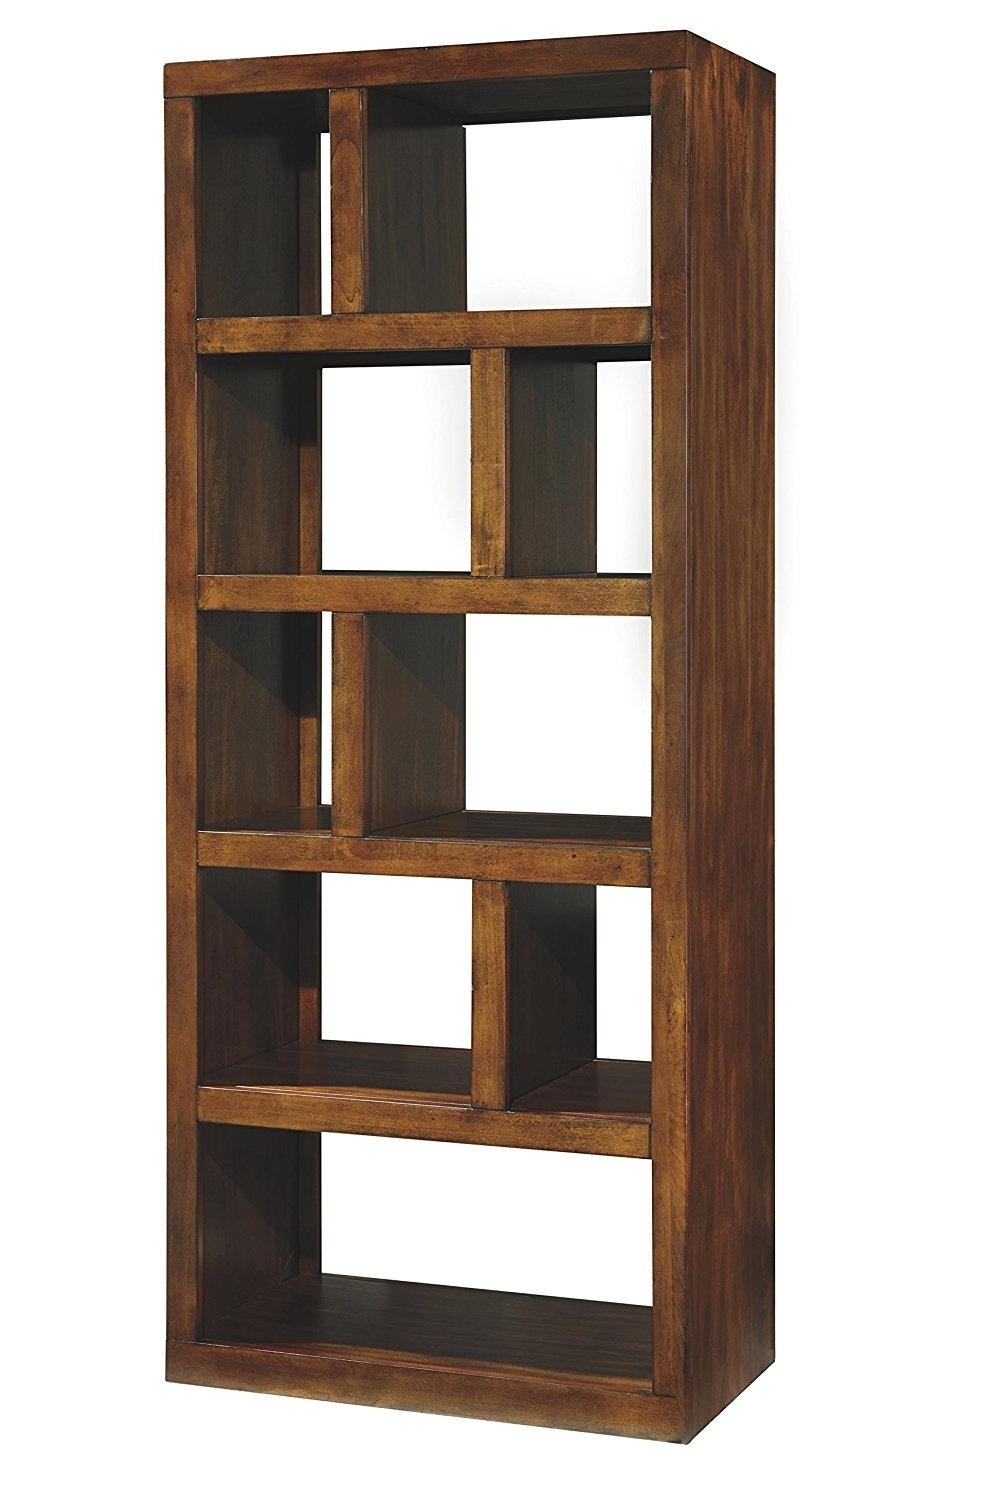 Most Popular Ashley Furniture Bookcases Throughout Amazon: Ashley Furniture Signature Design – Lobink Bookcase (View 2 of 15)